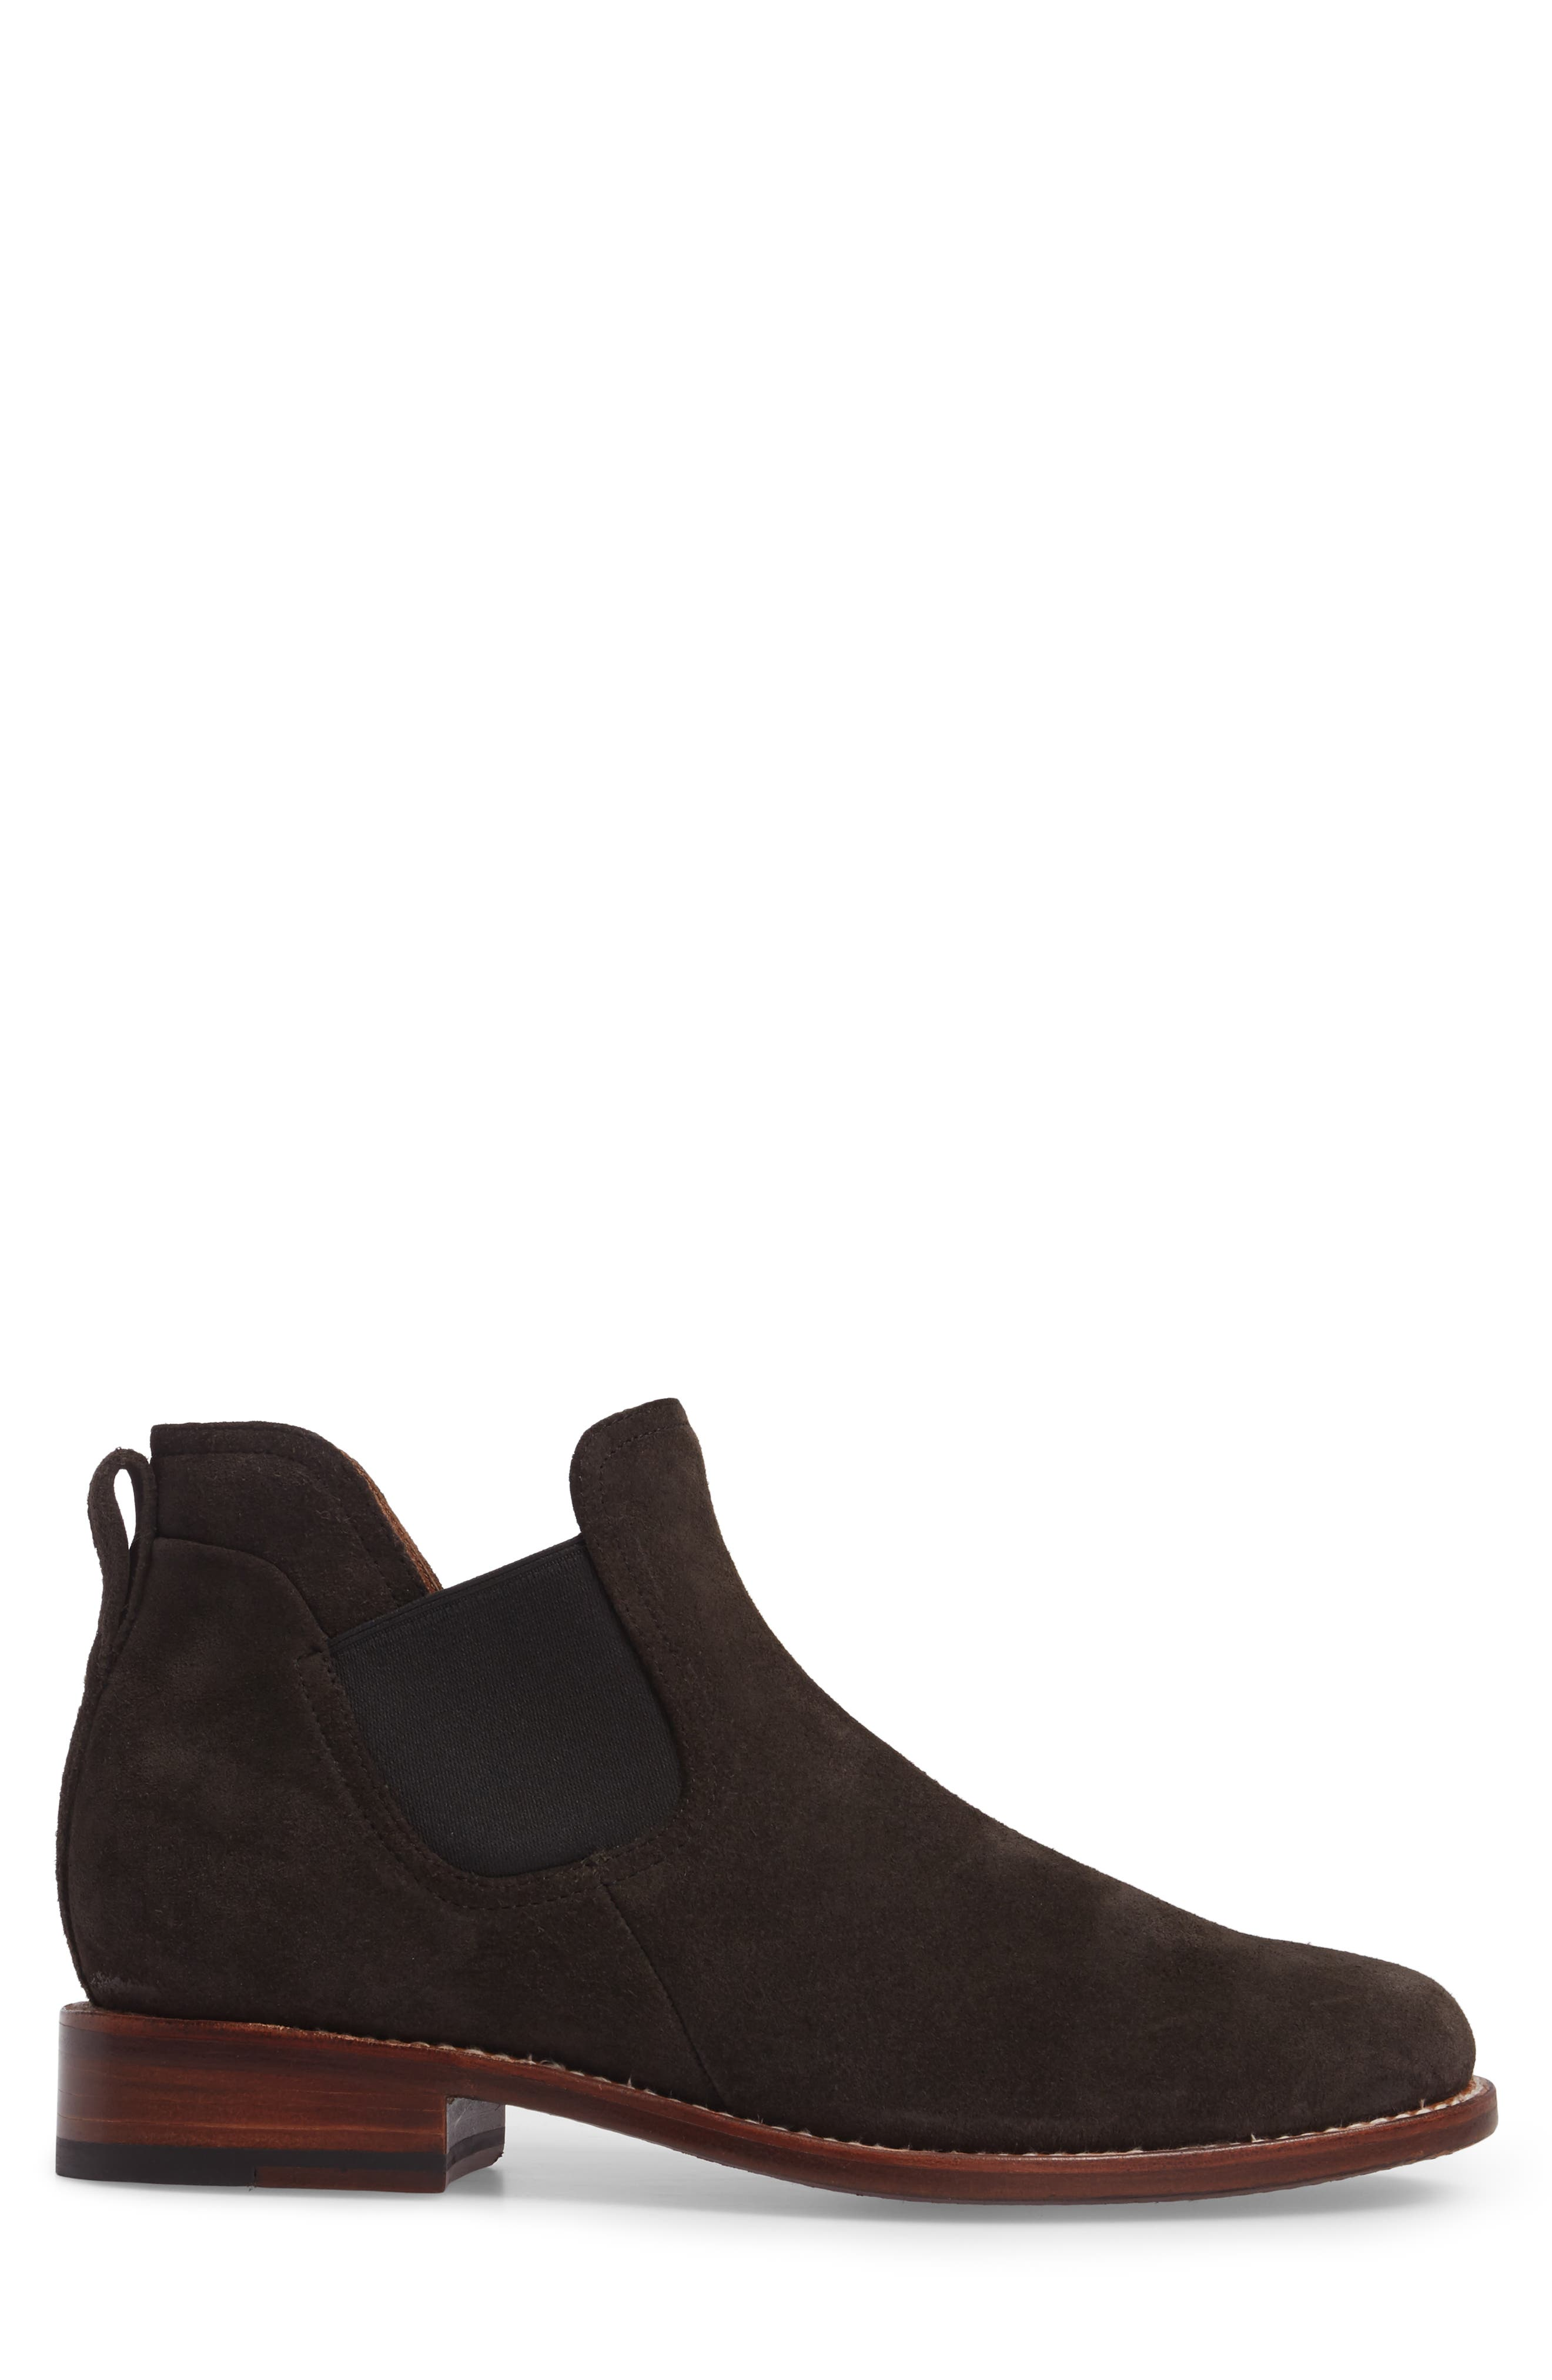 Rio Chelsea Boot,                             Alternate thumbnail 3, color,                             200